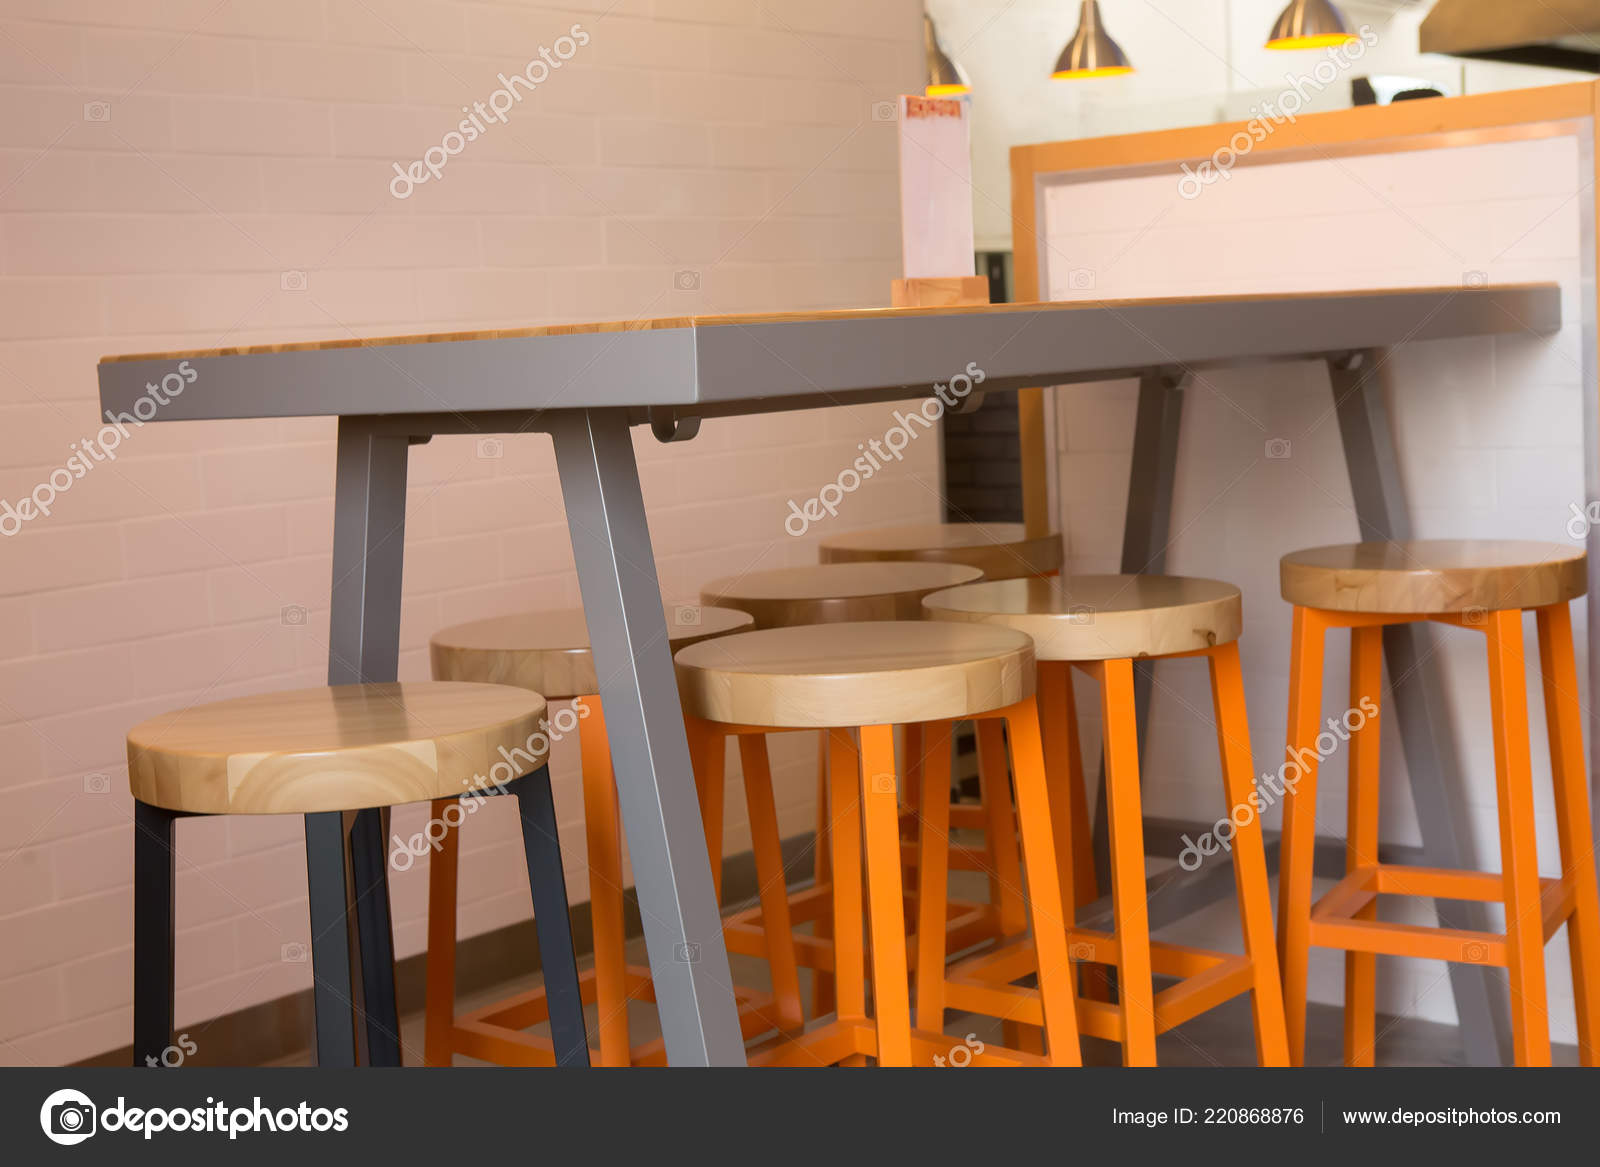 Bar Table With Chairs Bar Table Chairs Interior Cafe Stock Photo Apriori 220868876